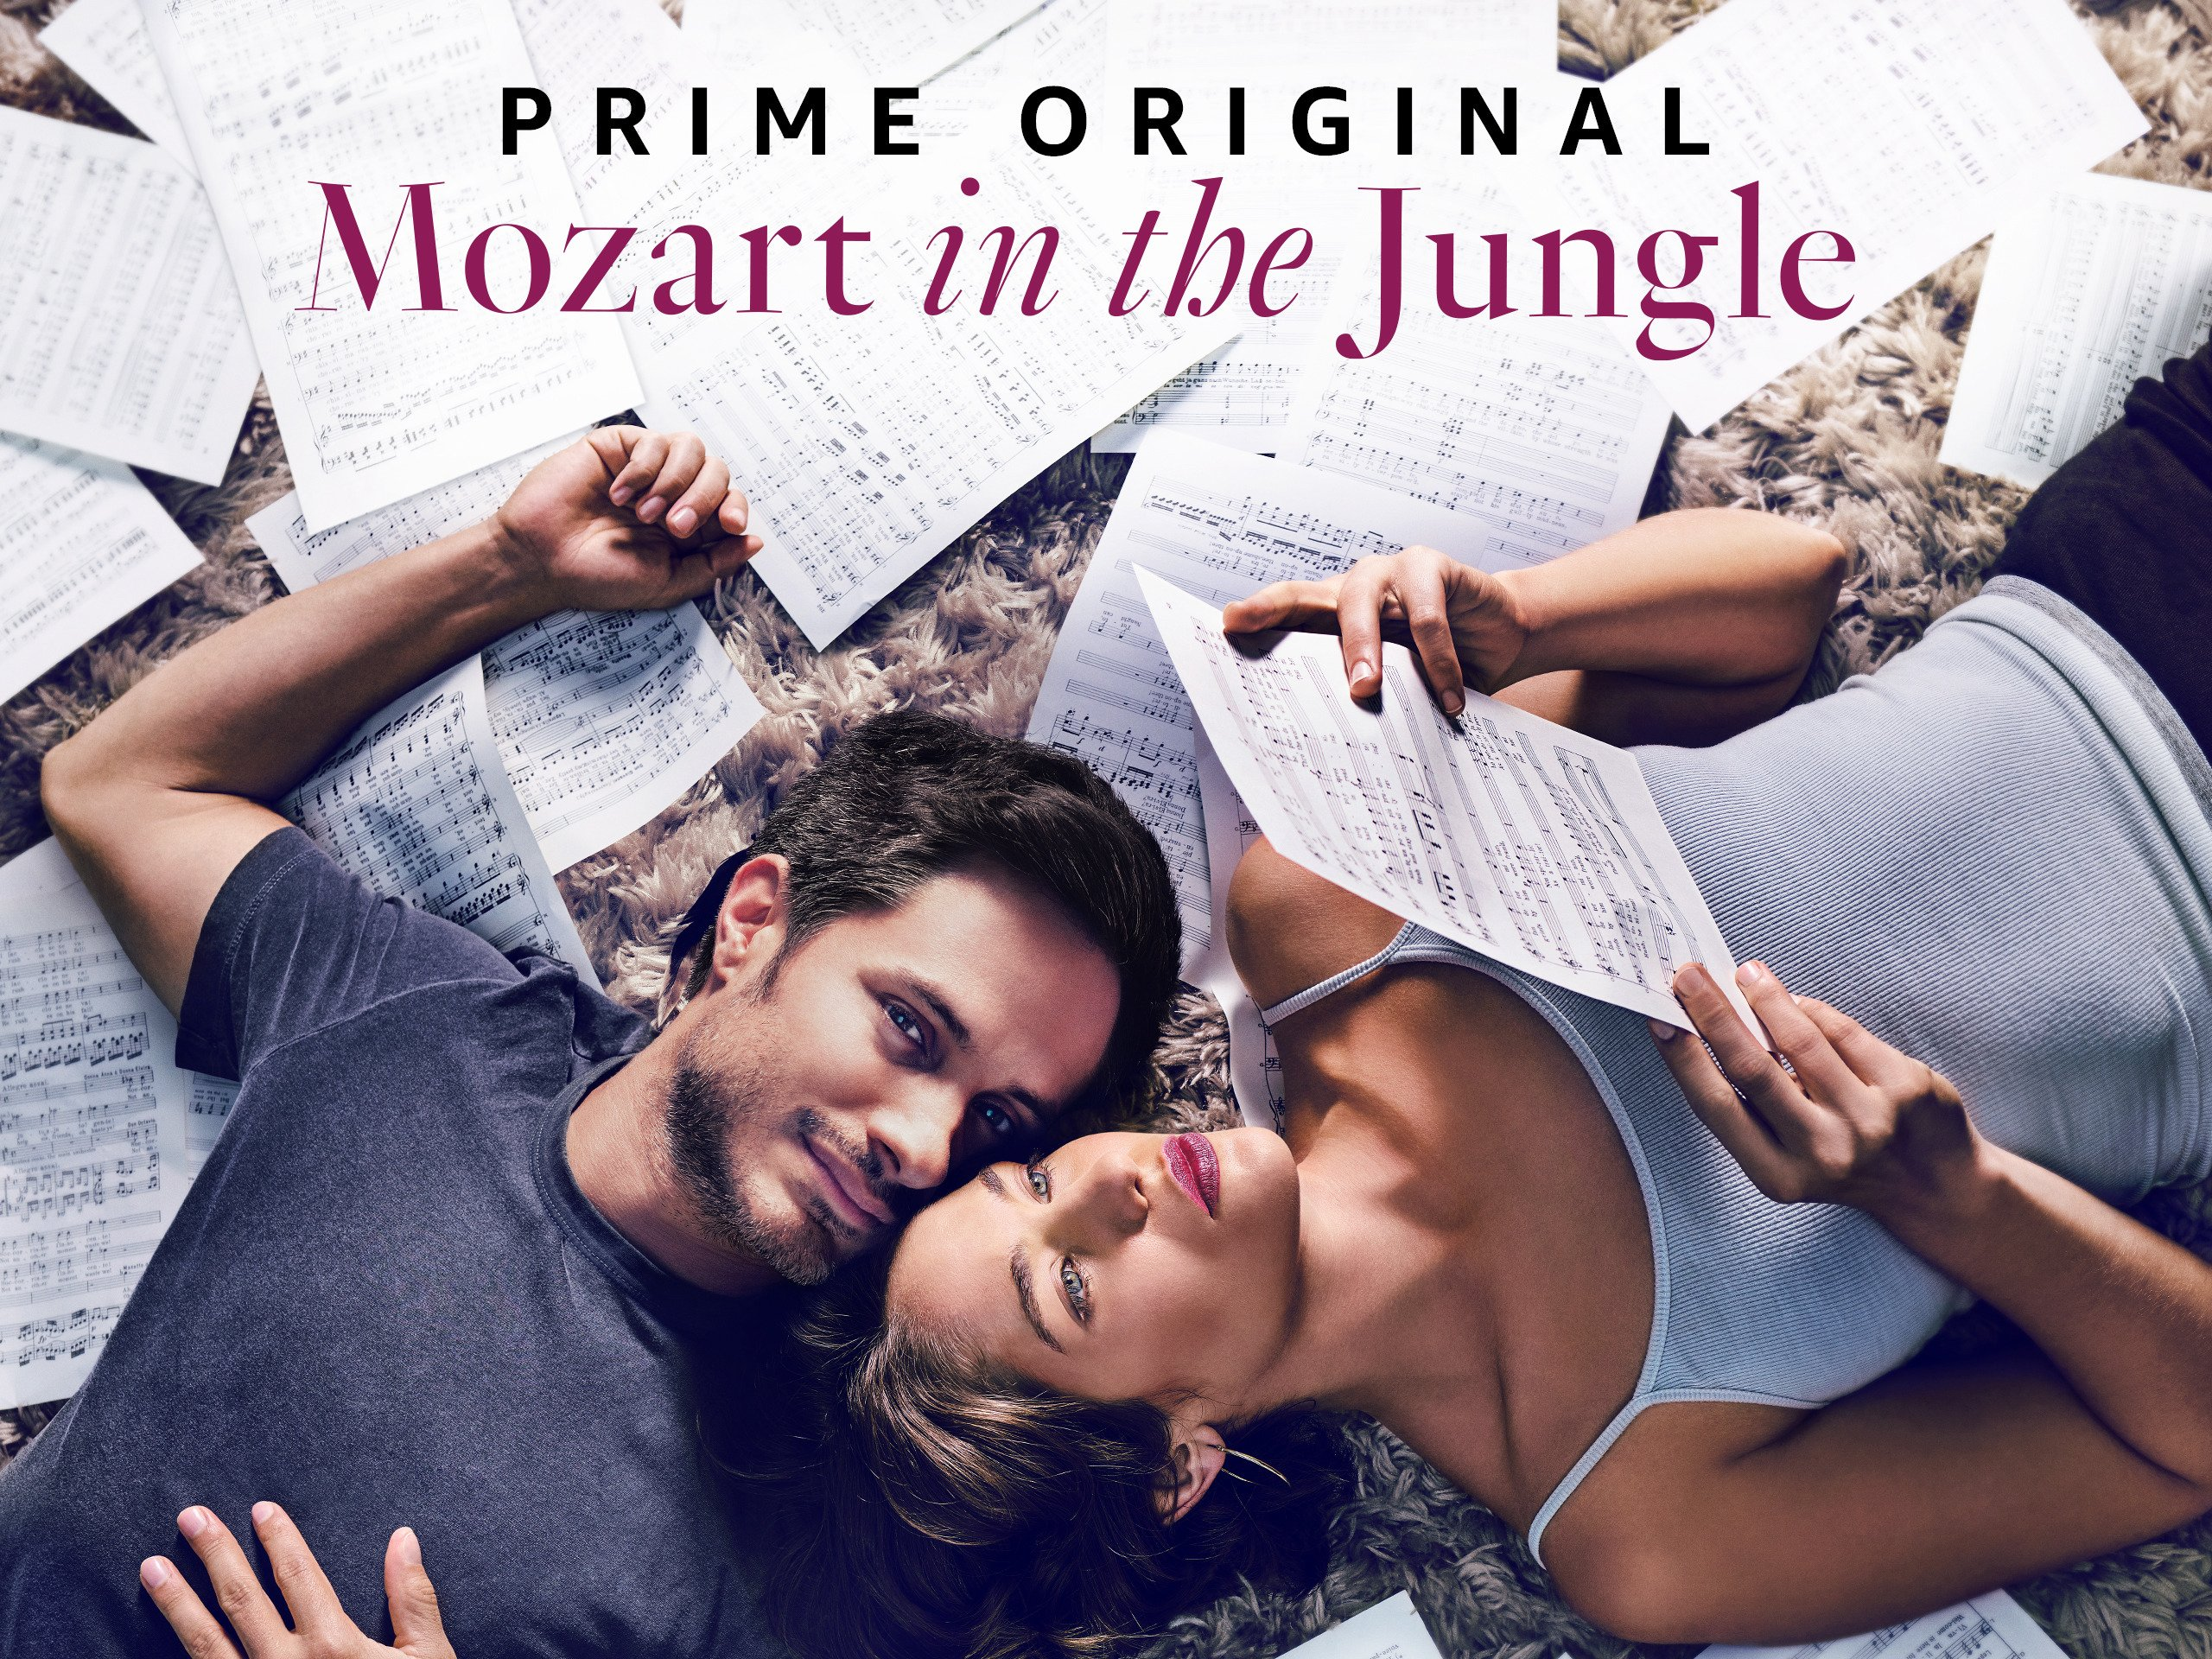 mozart in the jungle torrent